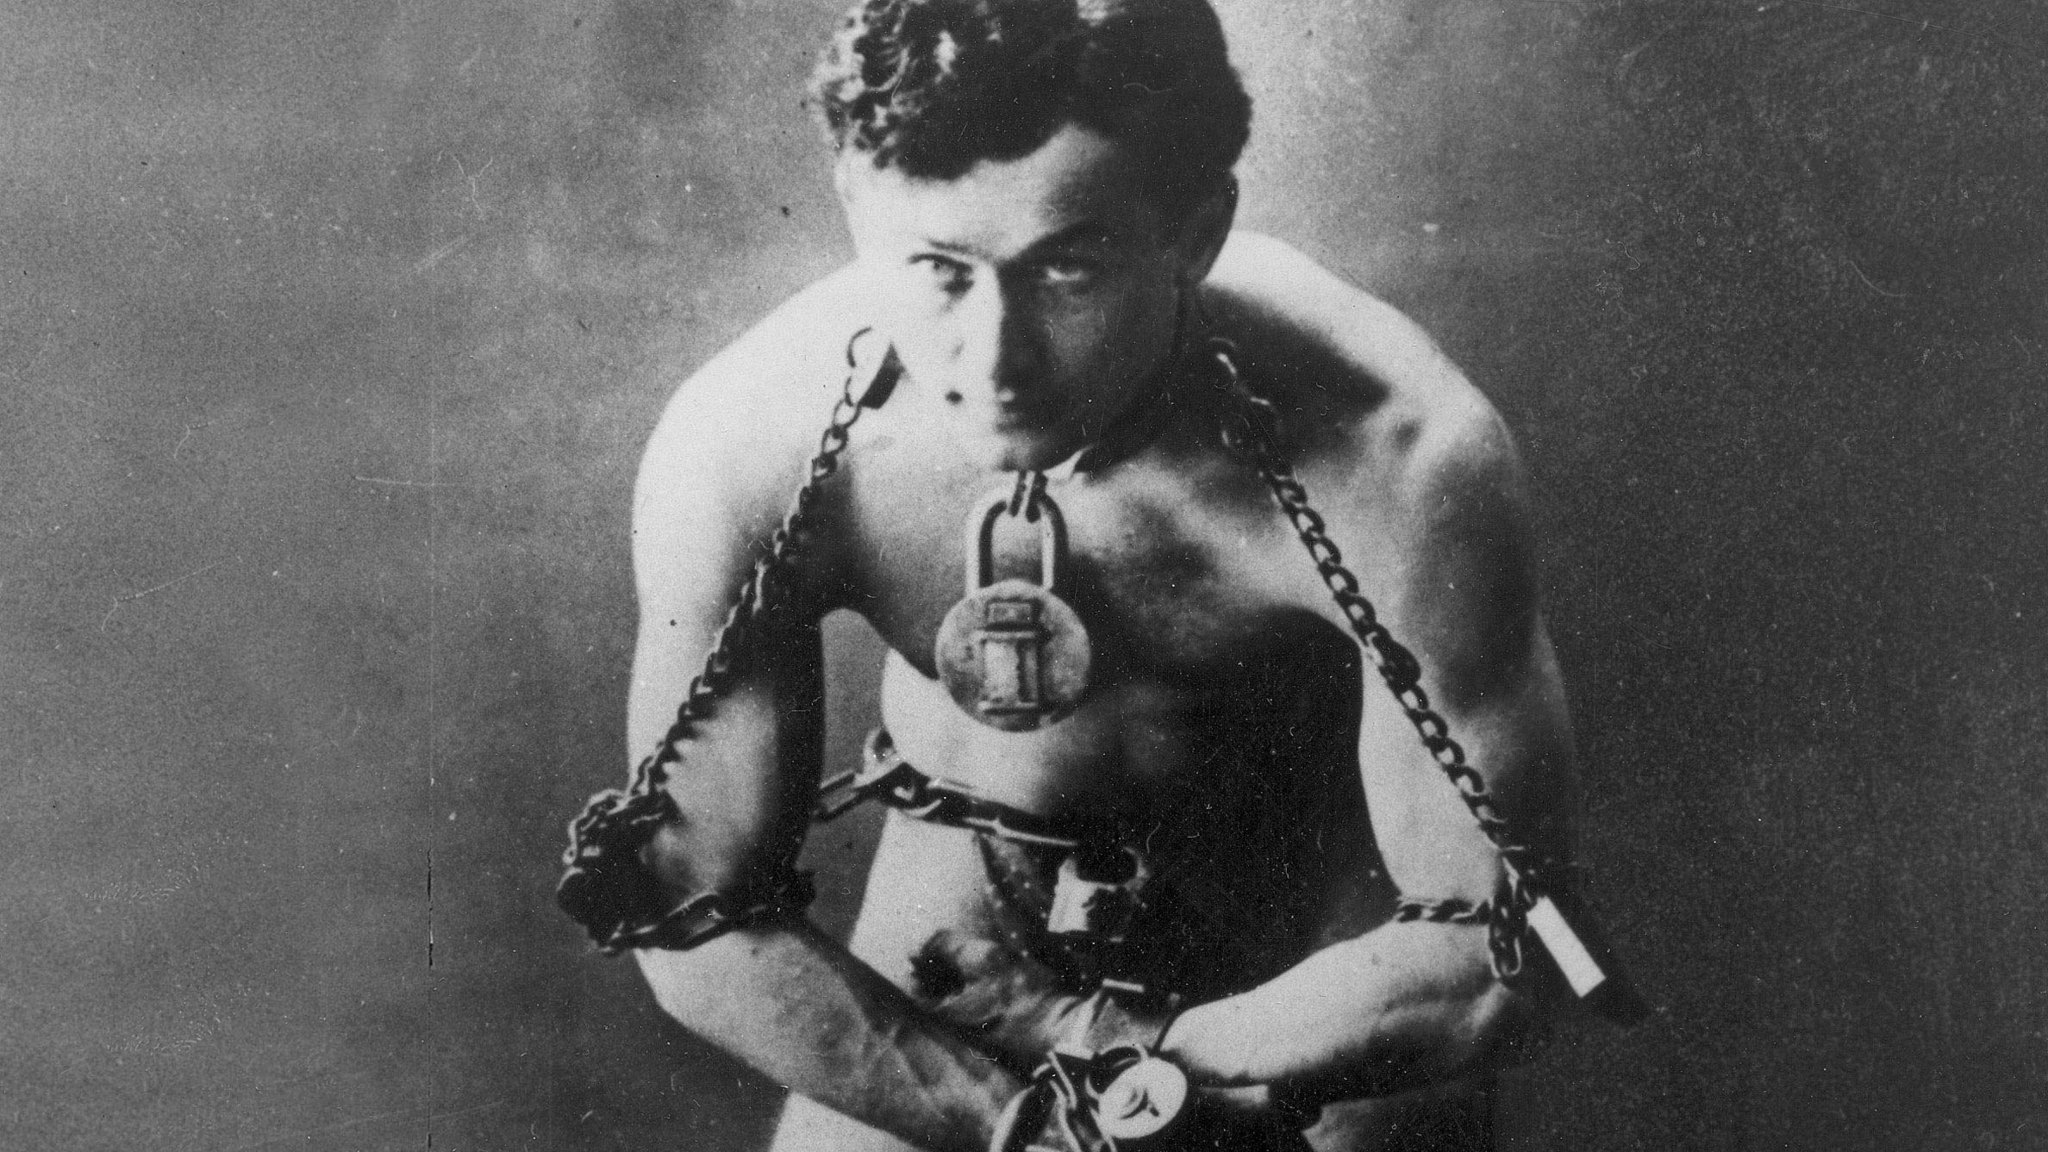 harry houdini Harry houdini (born erik weisz, later ehrich weiss, aka harry weiss march 24, 1874template:ndash october 31, 1926) was a hungarian-born american magician and escapologist, stunt performer, actor and film producer noted for his sensational escape acts.